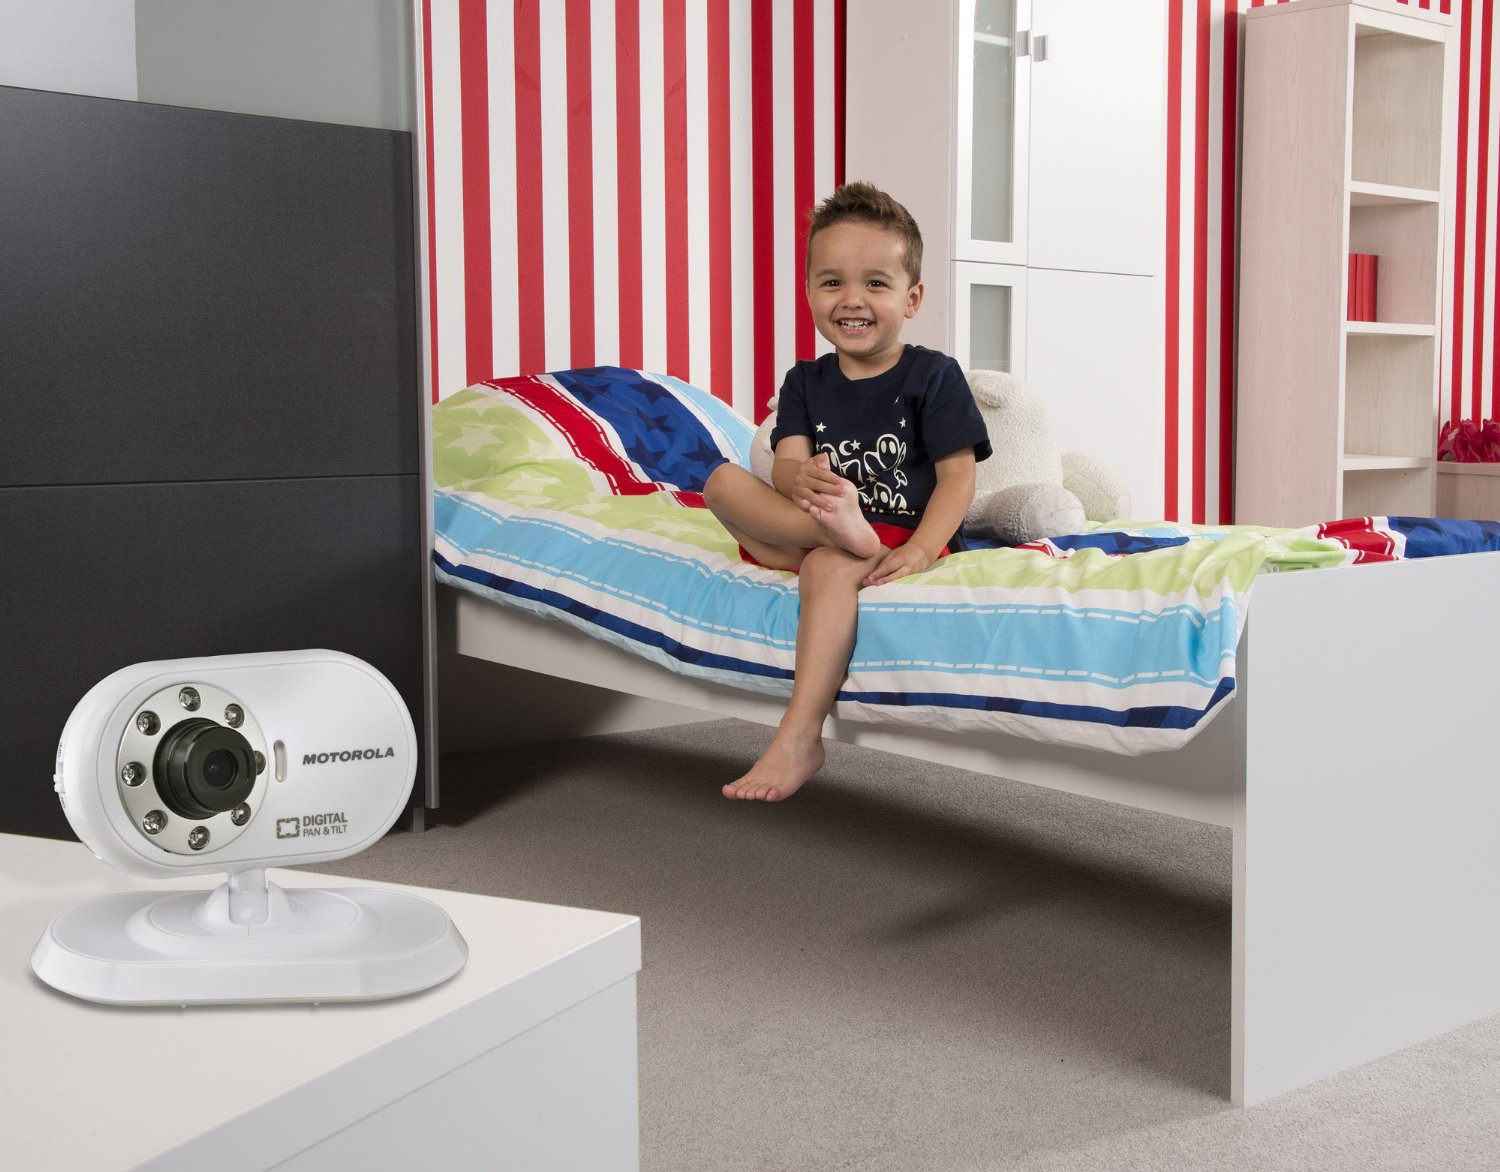 motorola babyphone vid o avec cran 2 4 motorola www. Black Bedroom Furniture Sets. Home Design Ideas